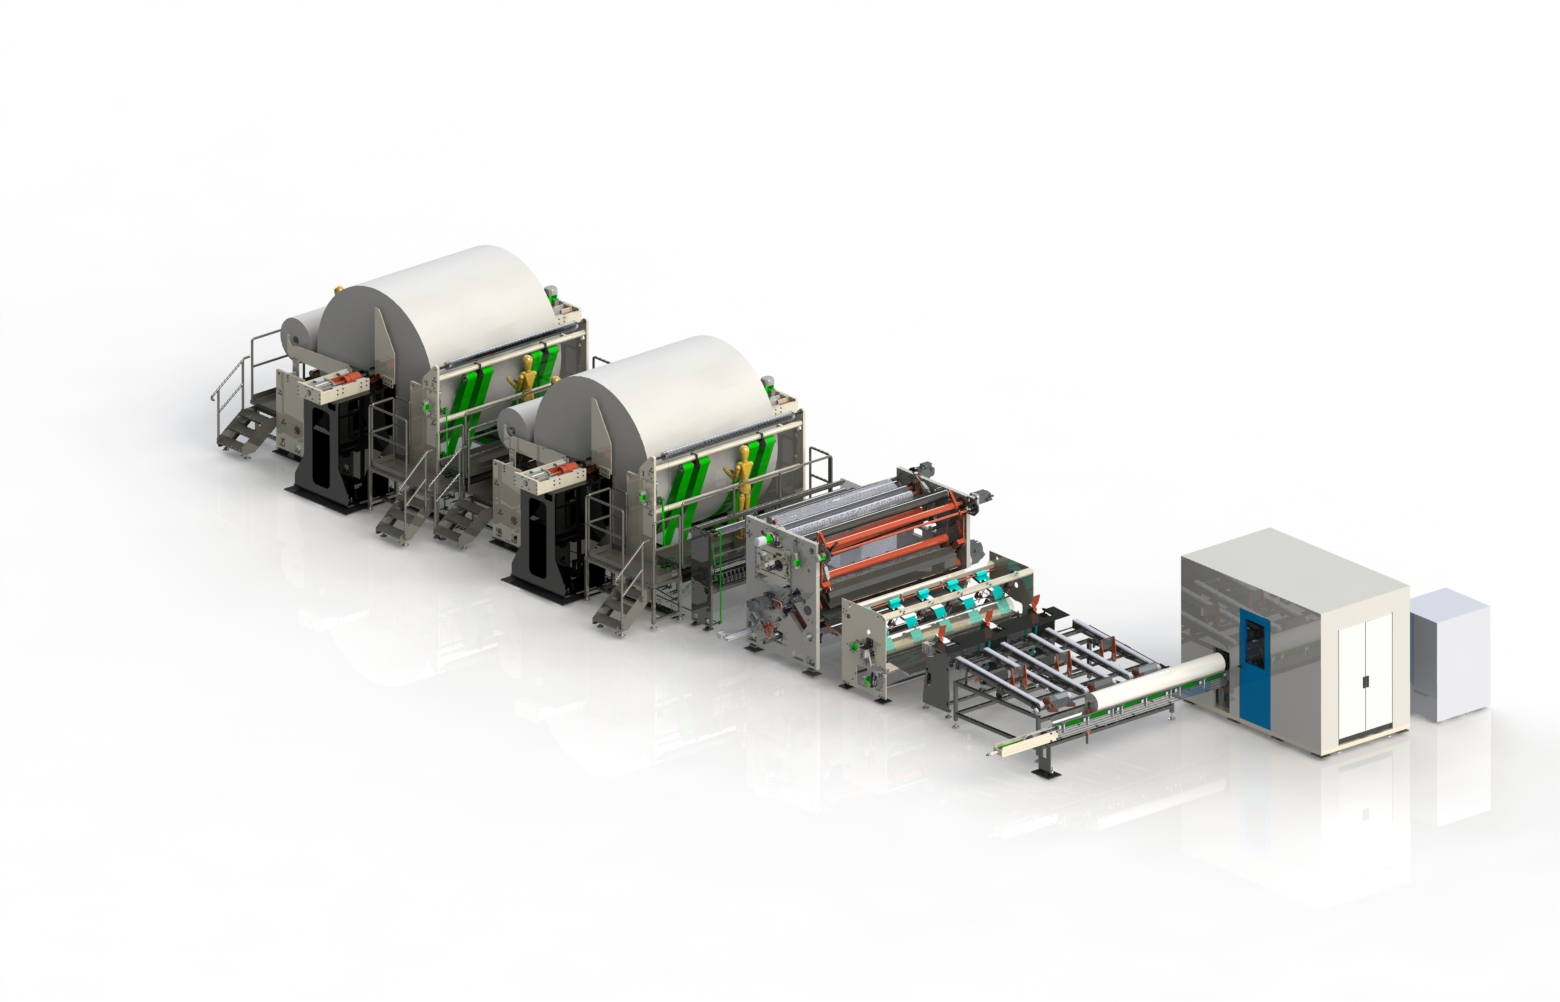 thesis technology srl Ptc provides technology solutions that transform how products are created and serviced, helping companies achieve product and service advantage.